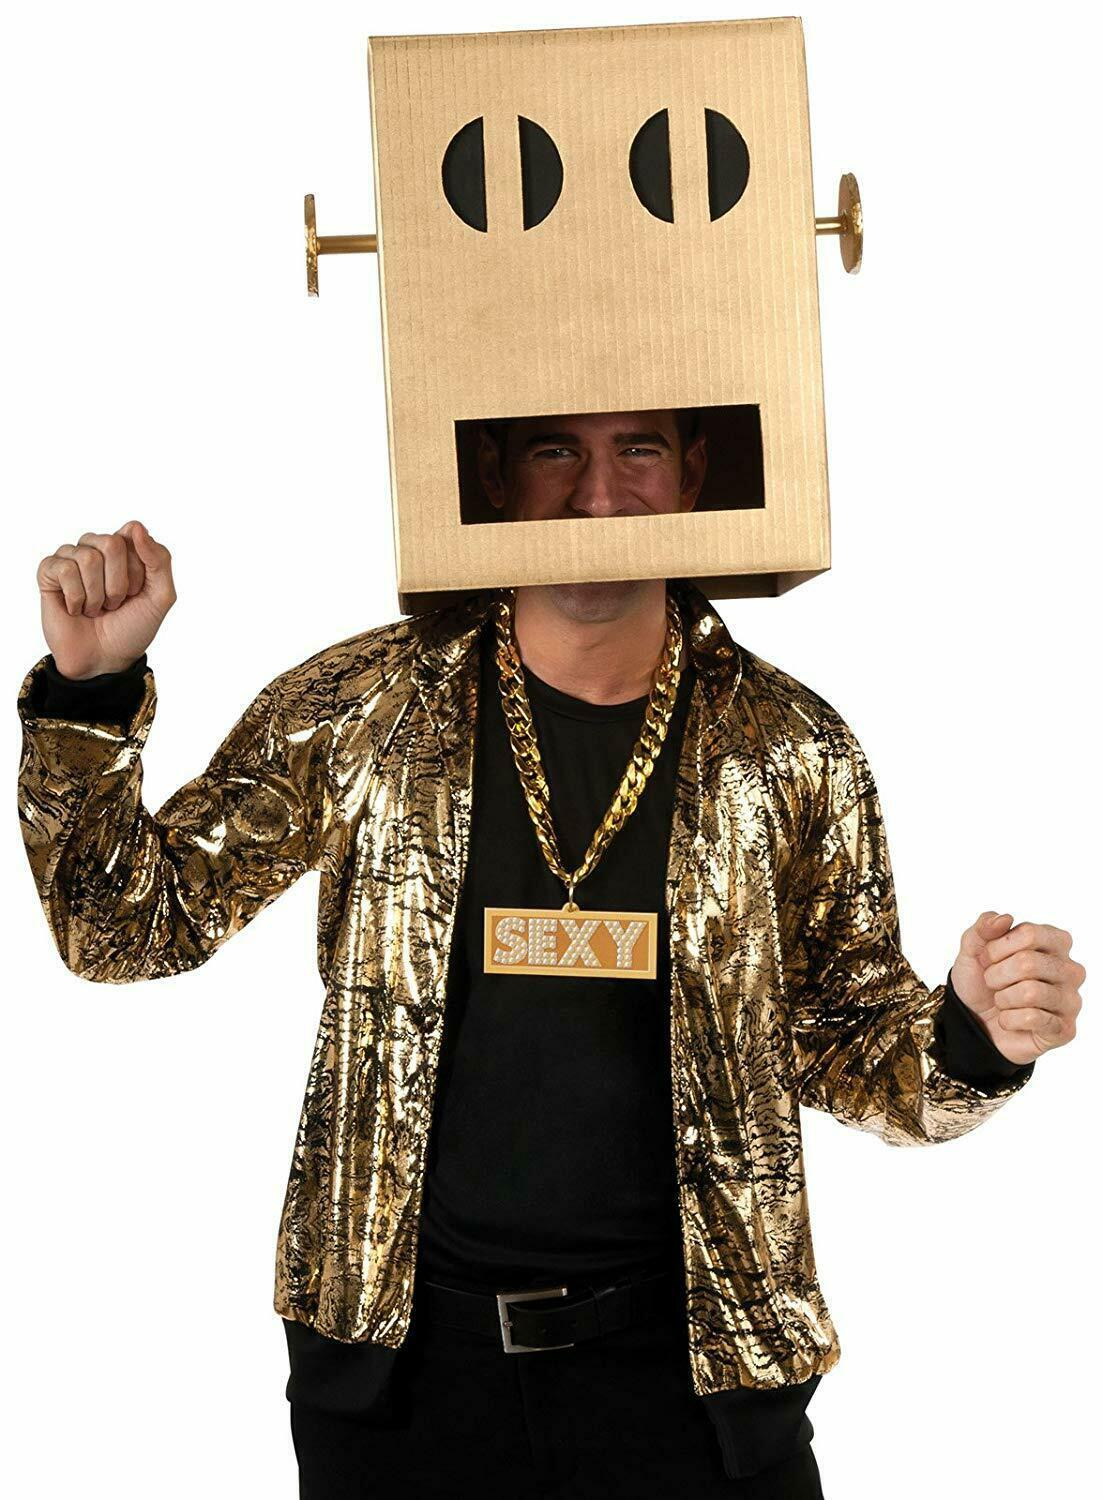 Standard -Rubie's Costume Lmfao Robot Pete Shuffle Bot Party Rock Anthem Costume